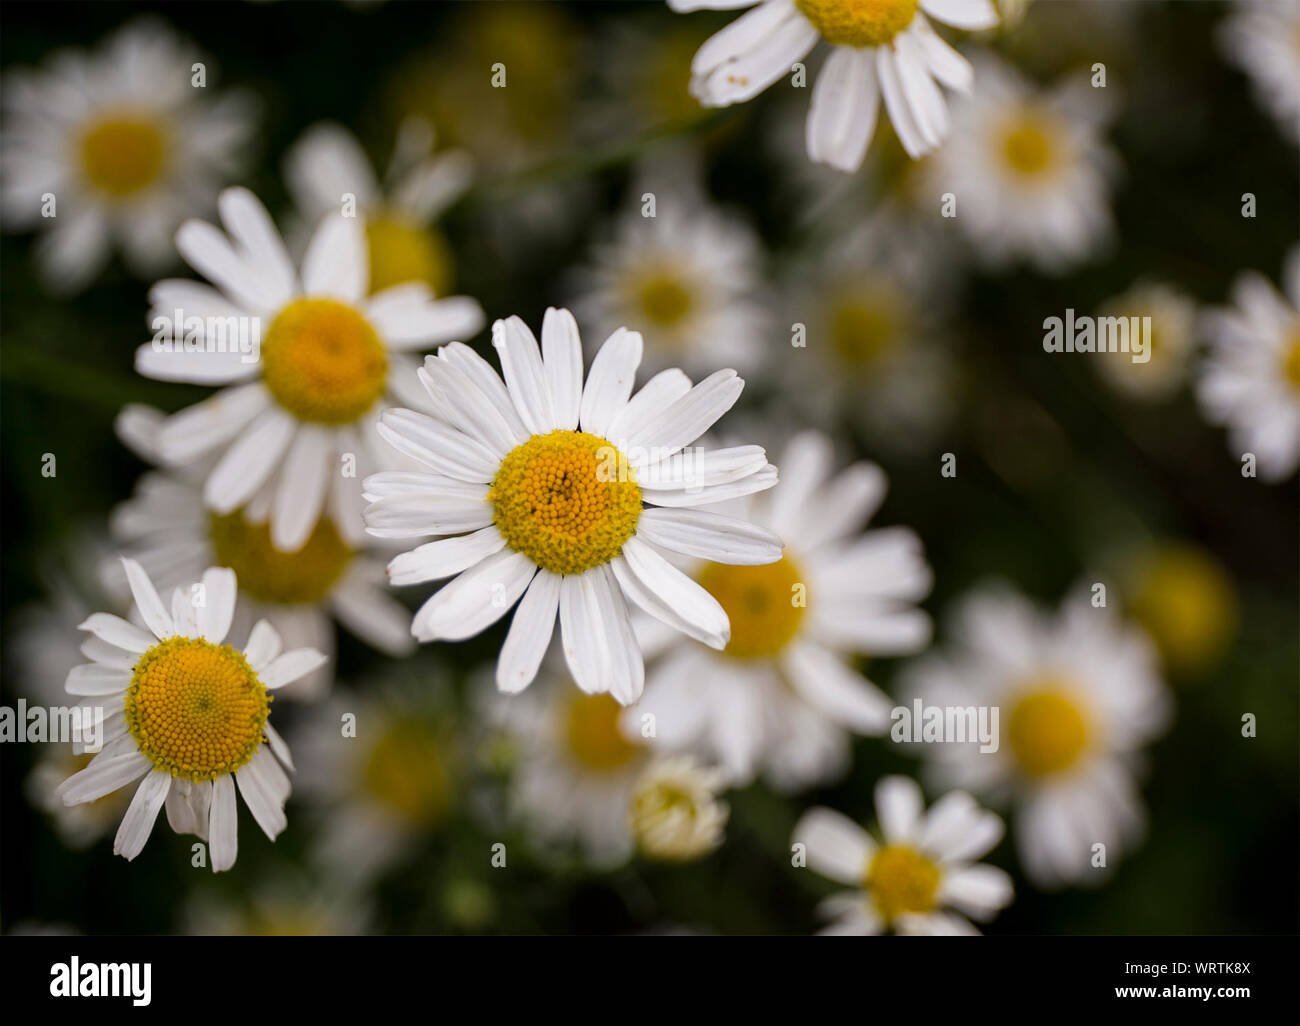 Close-up Of White Flowers Blooming Outdoors Stock Photo